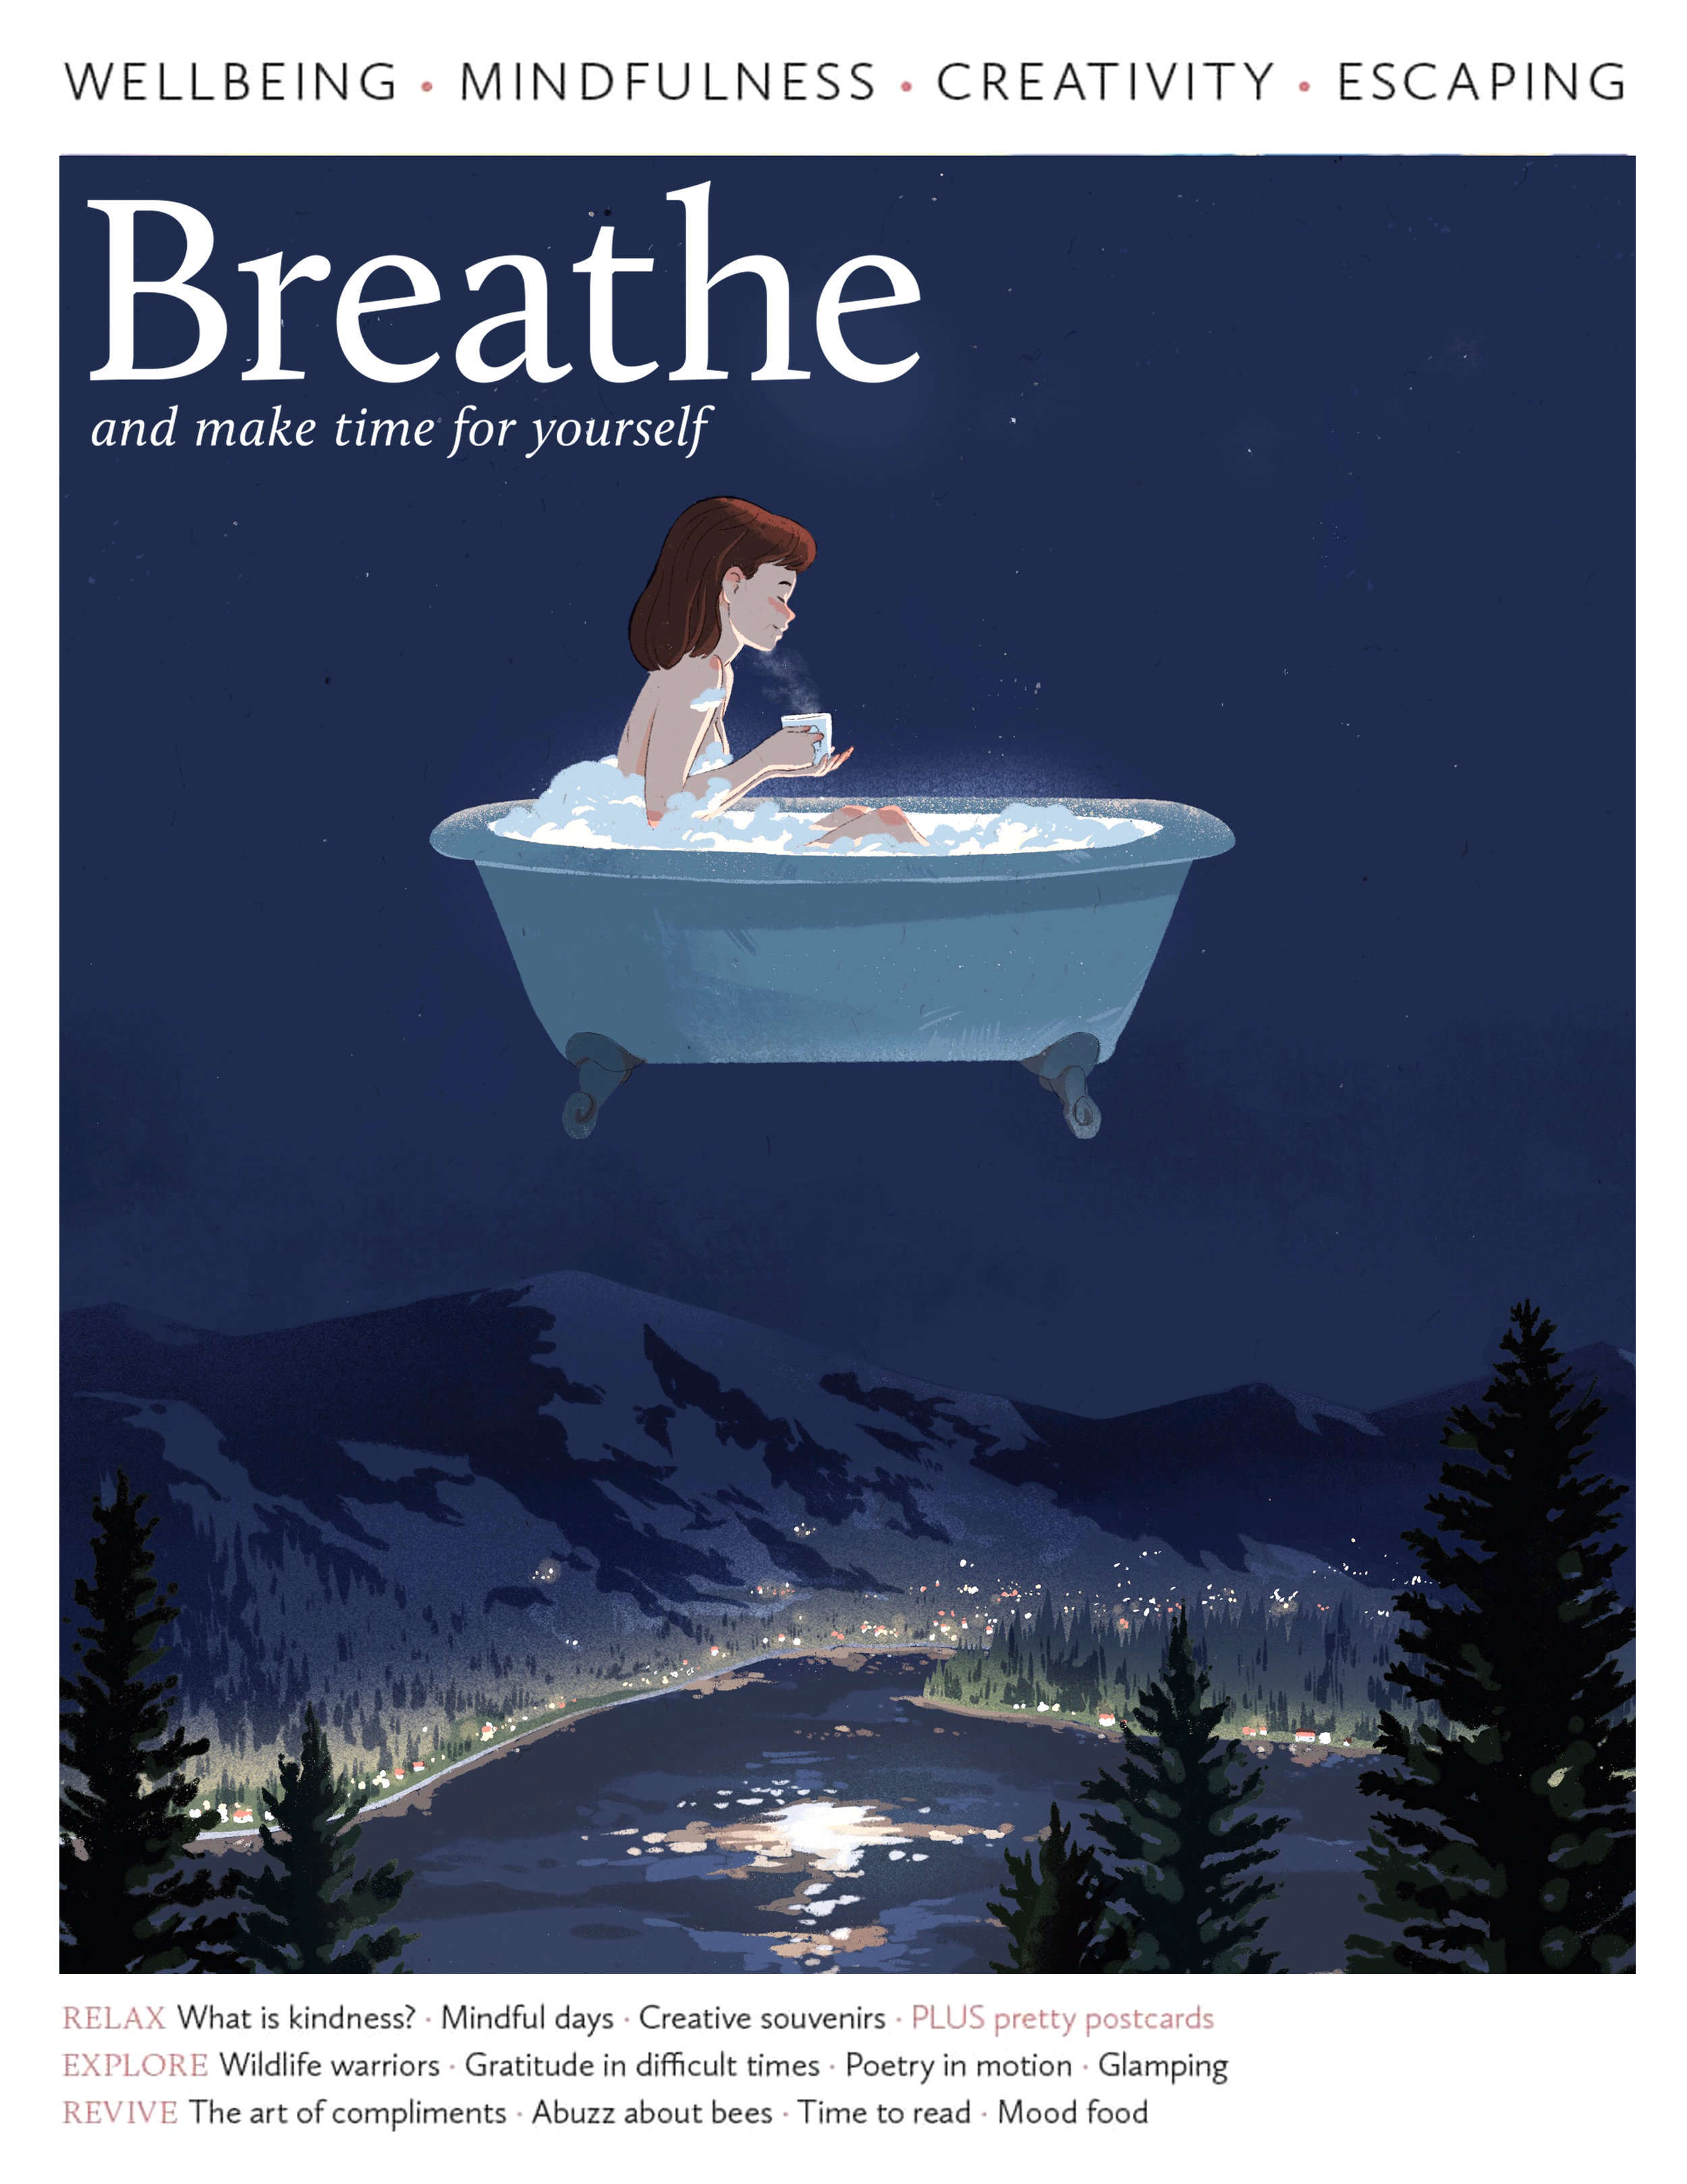 Breathe Magazine Template 2 (1).jpg